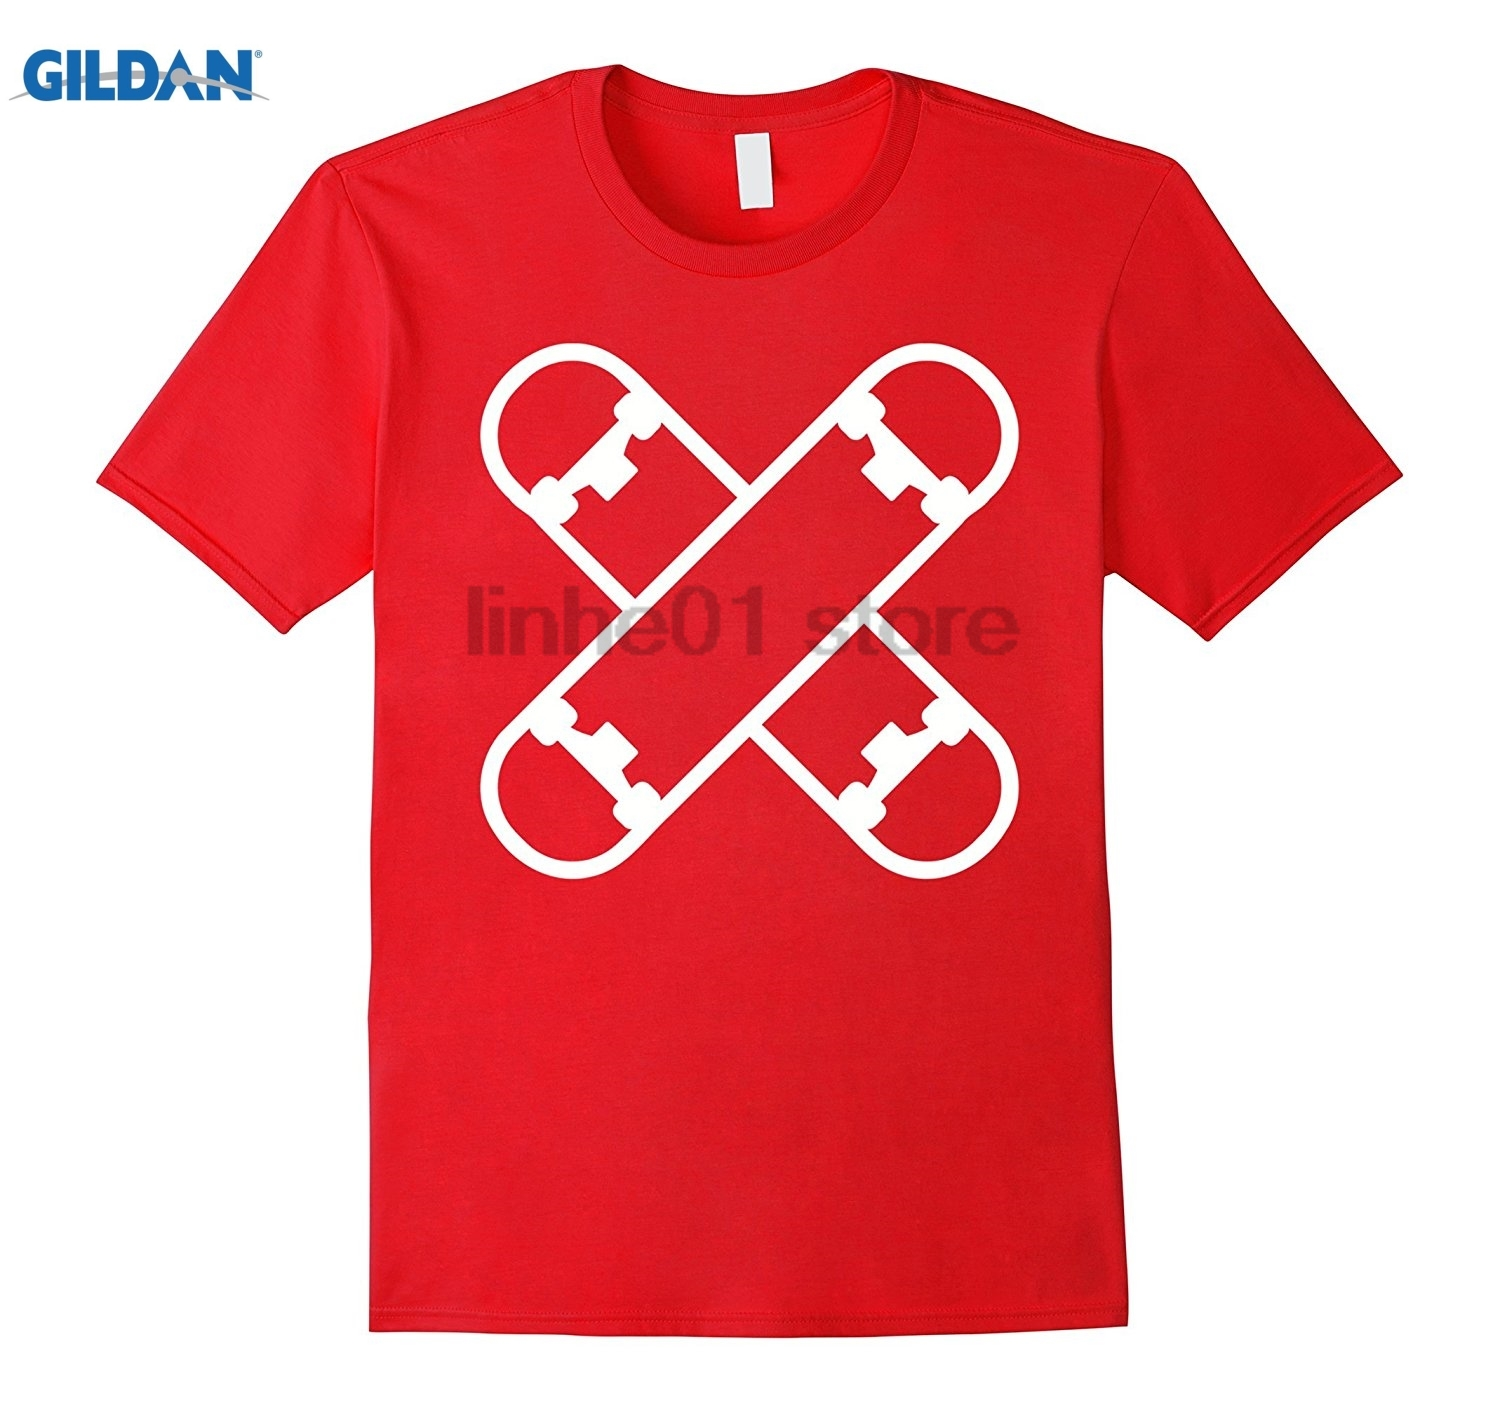 GILDAN Crossed skateboard decks T-Shirt sunglasses women T-shirt